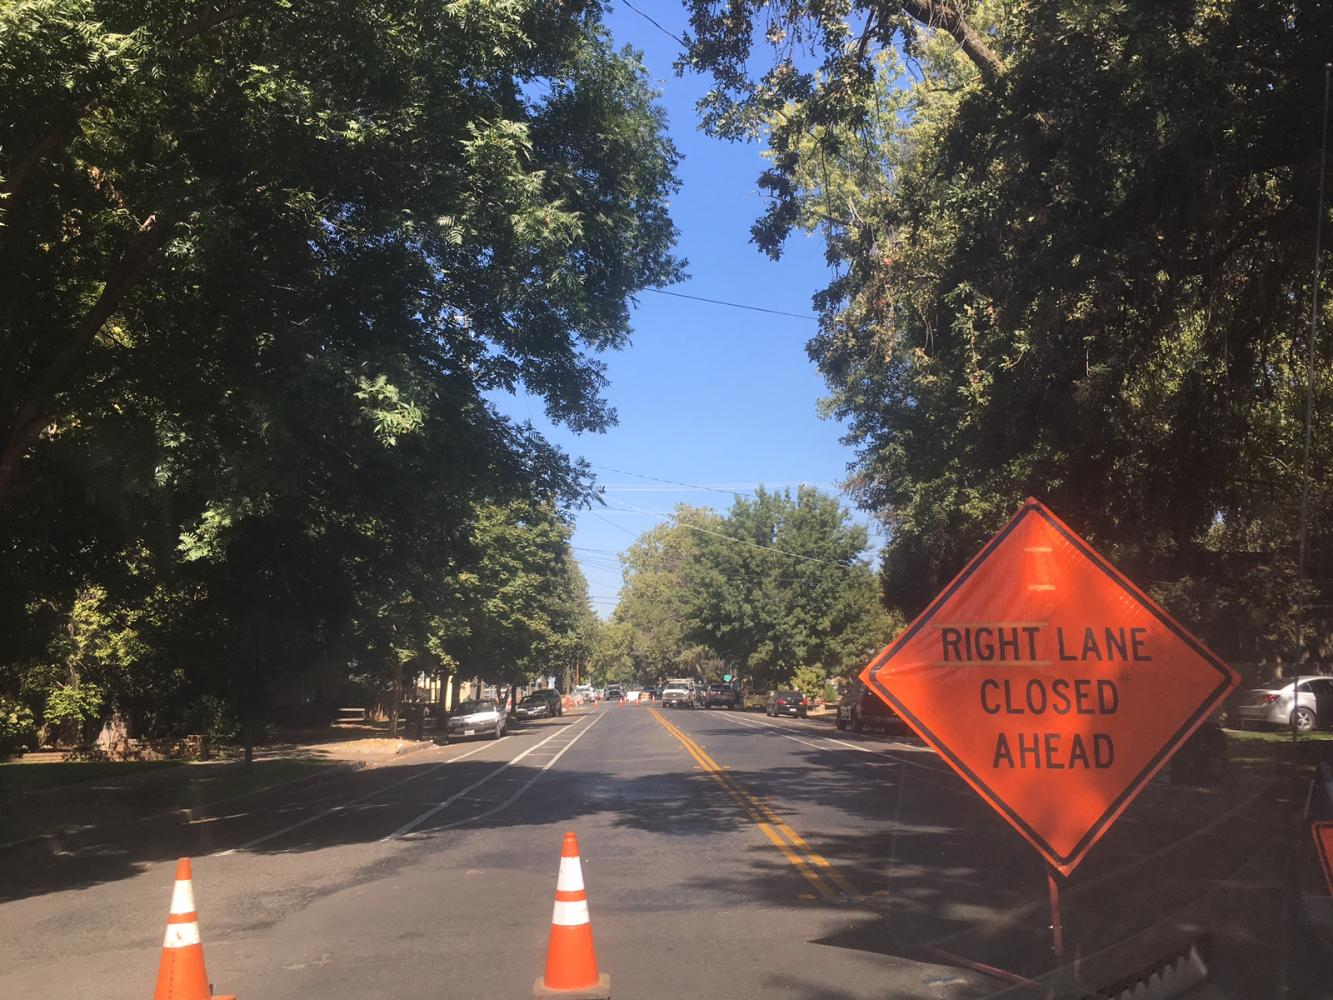 Road closed between 9th and 10th streets. Photo credit: Luke Dennison